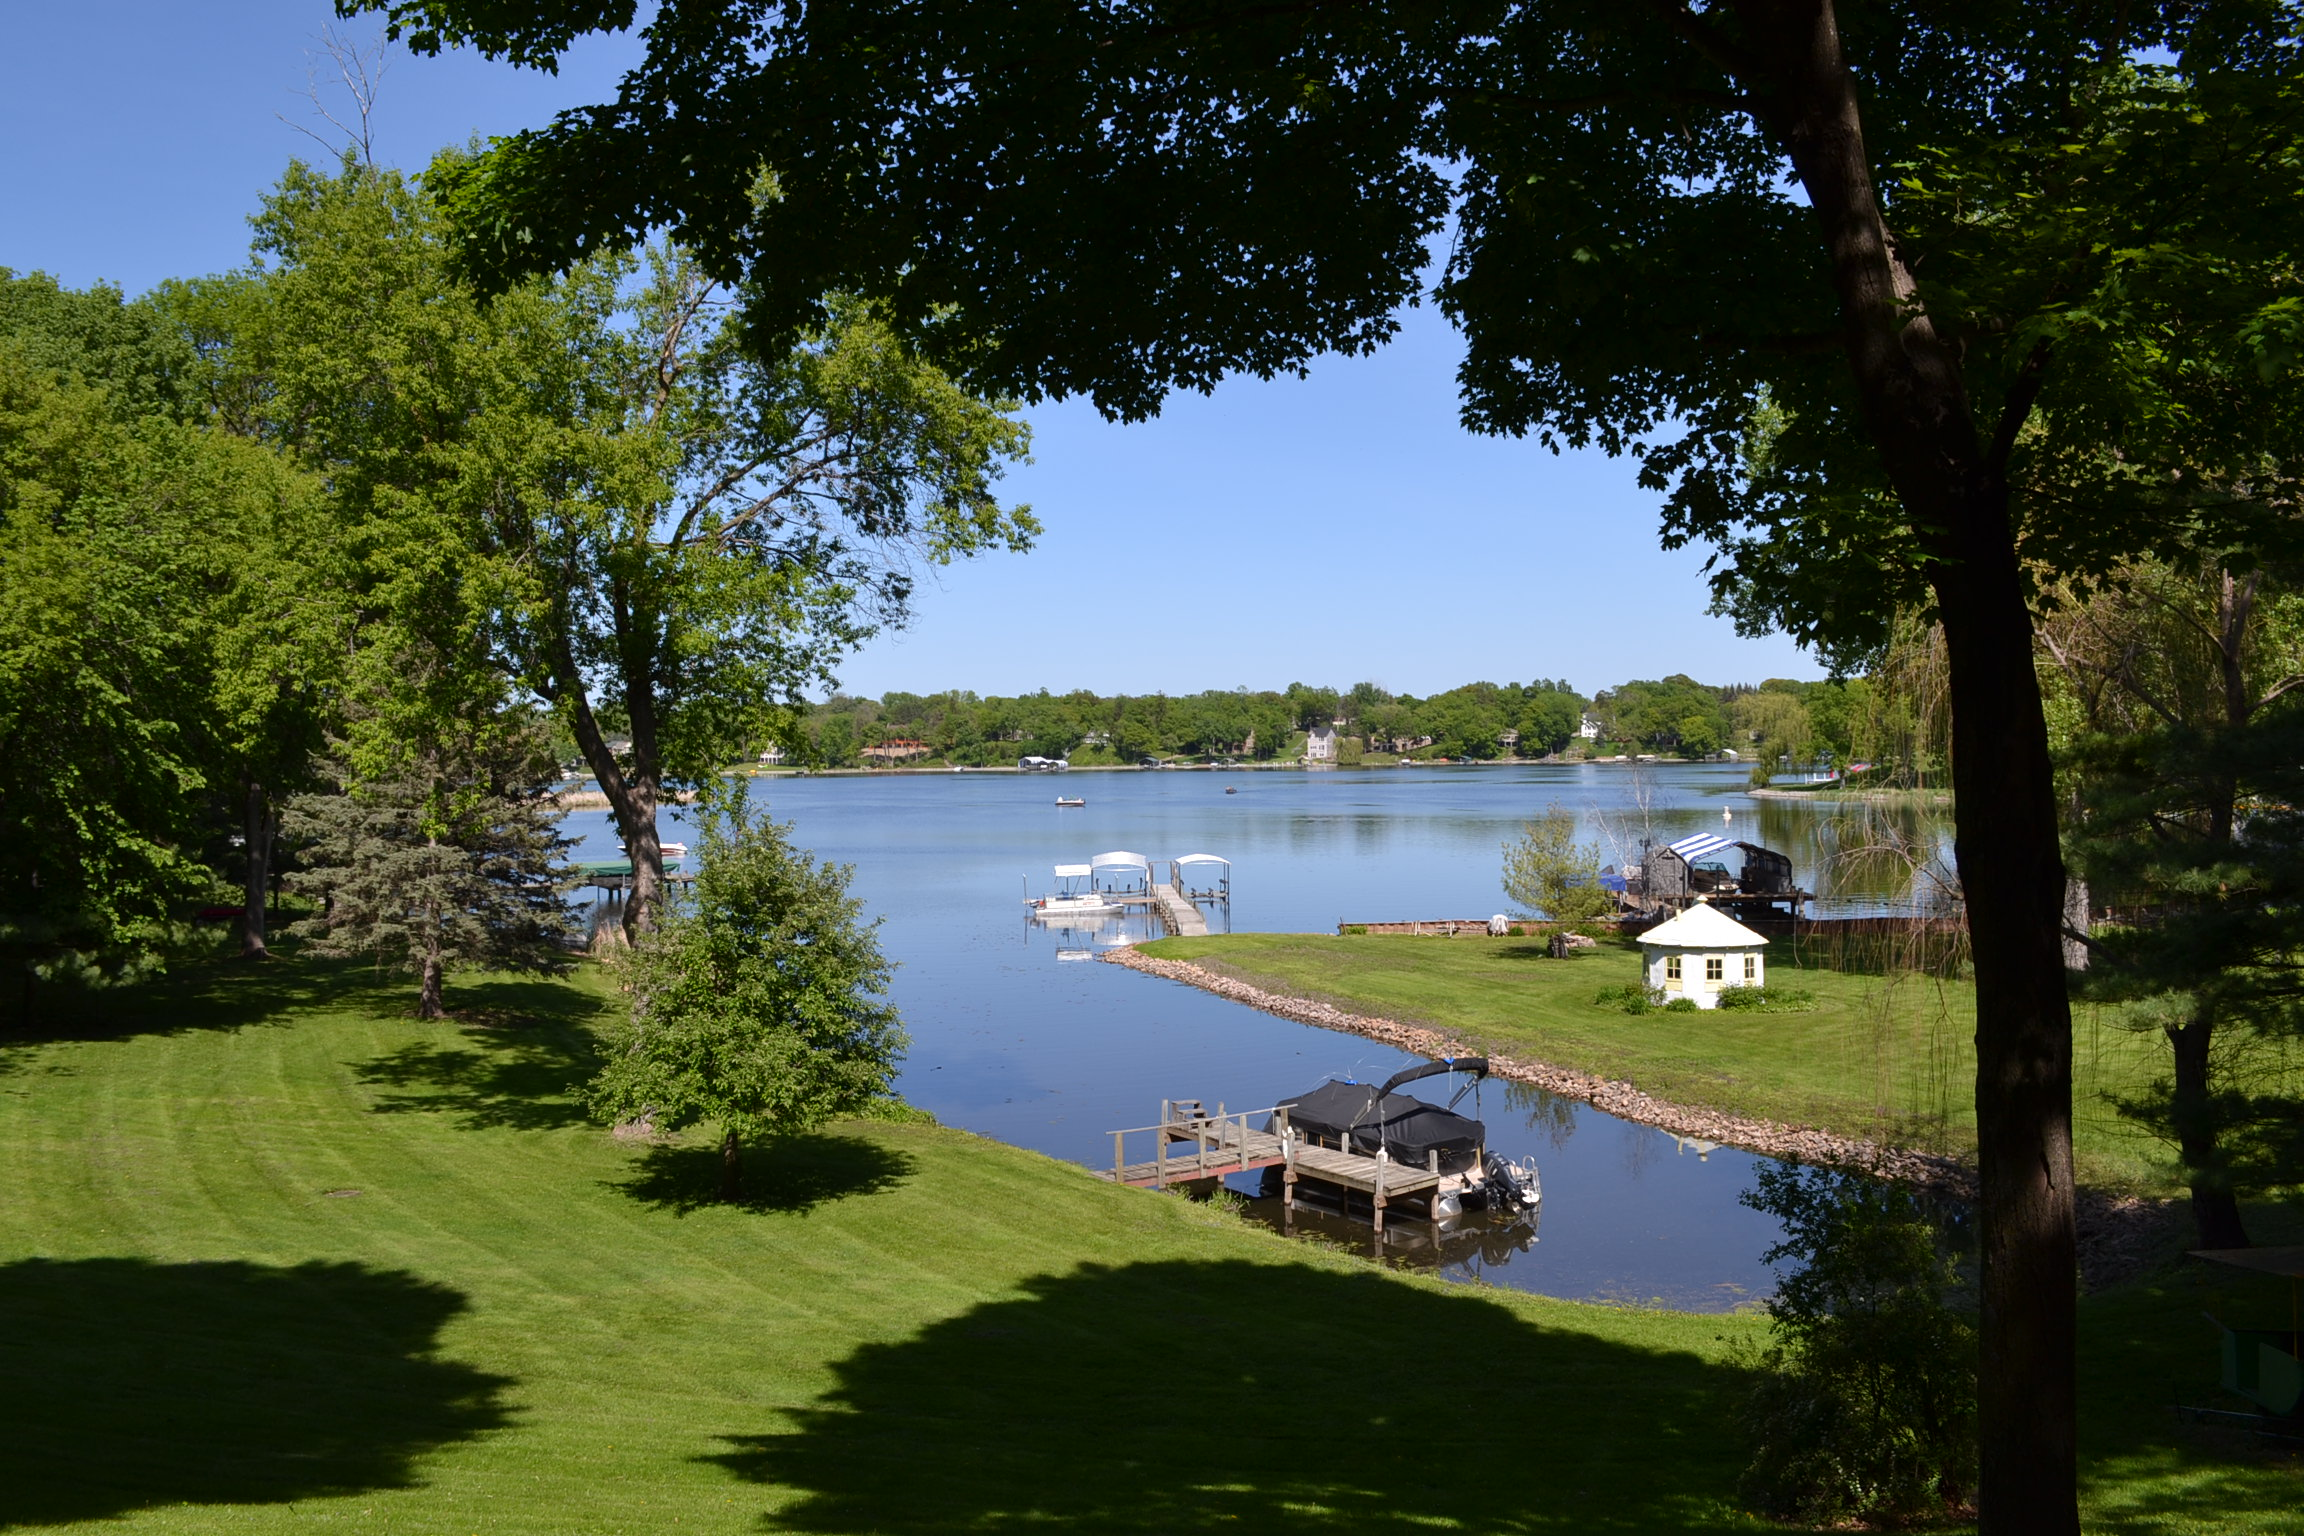 Lake Minnetonka Lake Shore, Lake Minnetonka Acreage, Lake Minnetonka Homes for Sale, New Listing on Lake Minnetonka